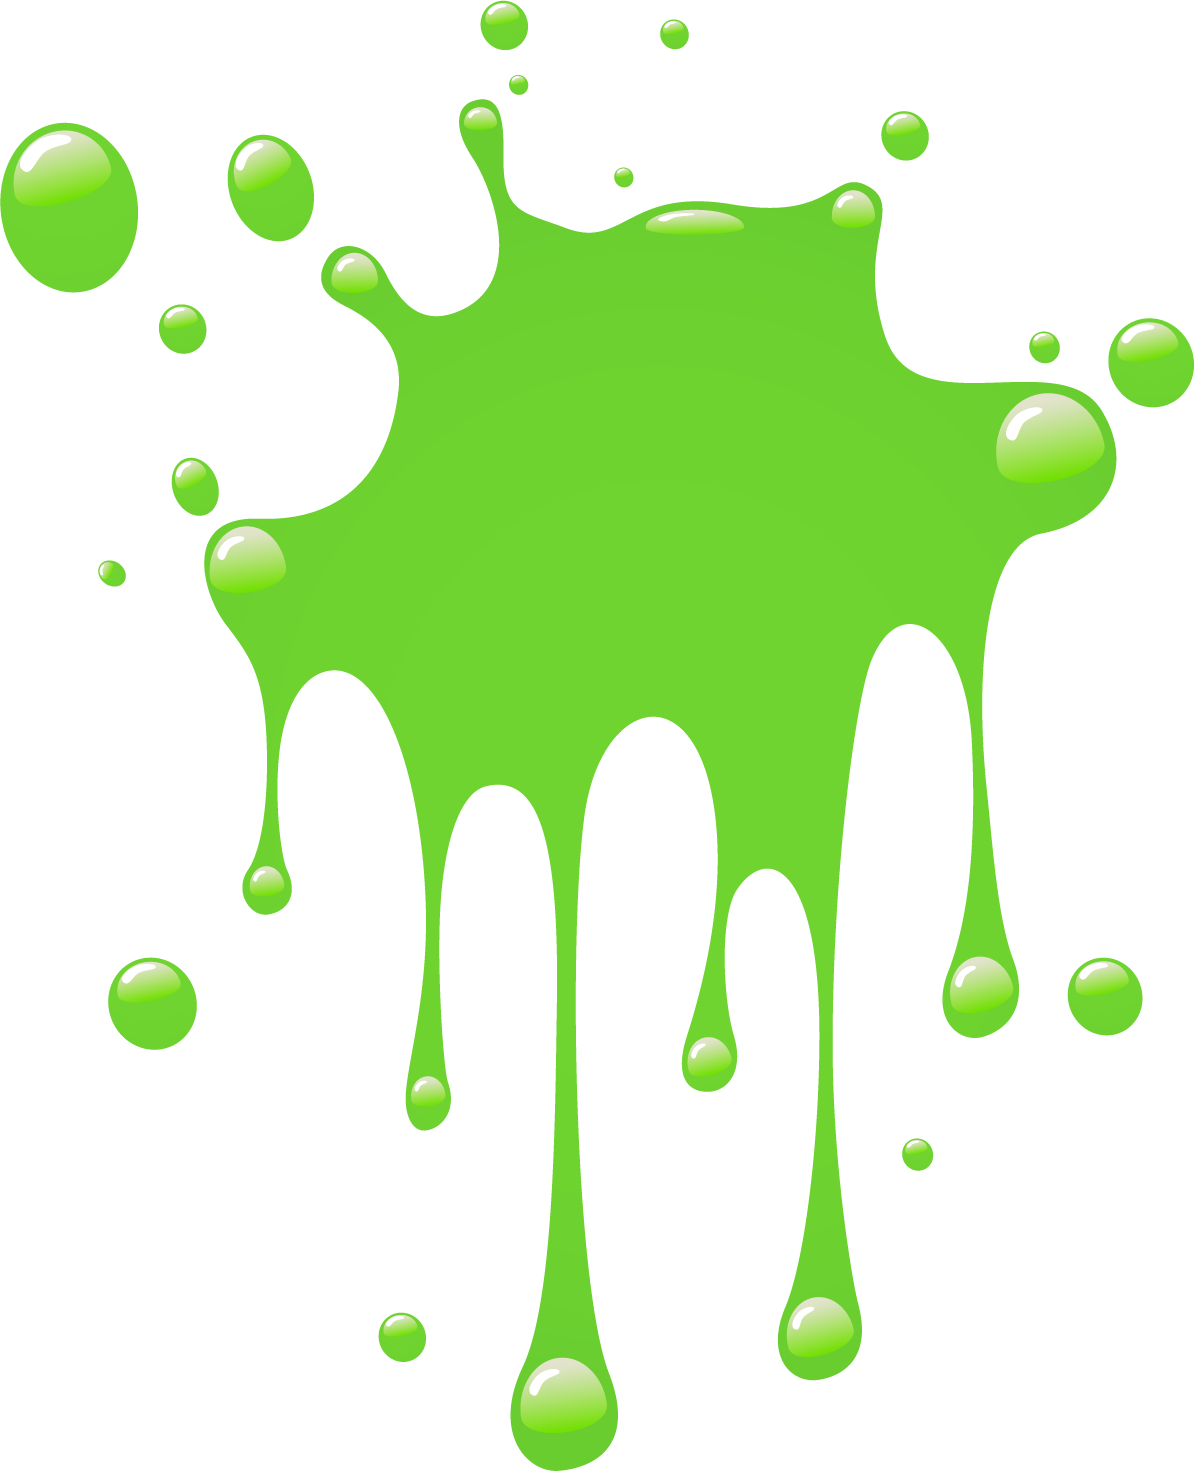 Slime Clipart - Cliparts.co